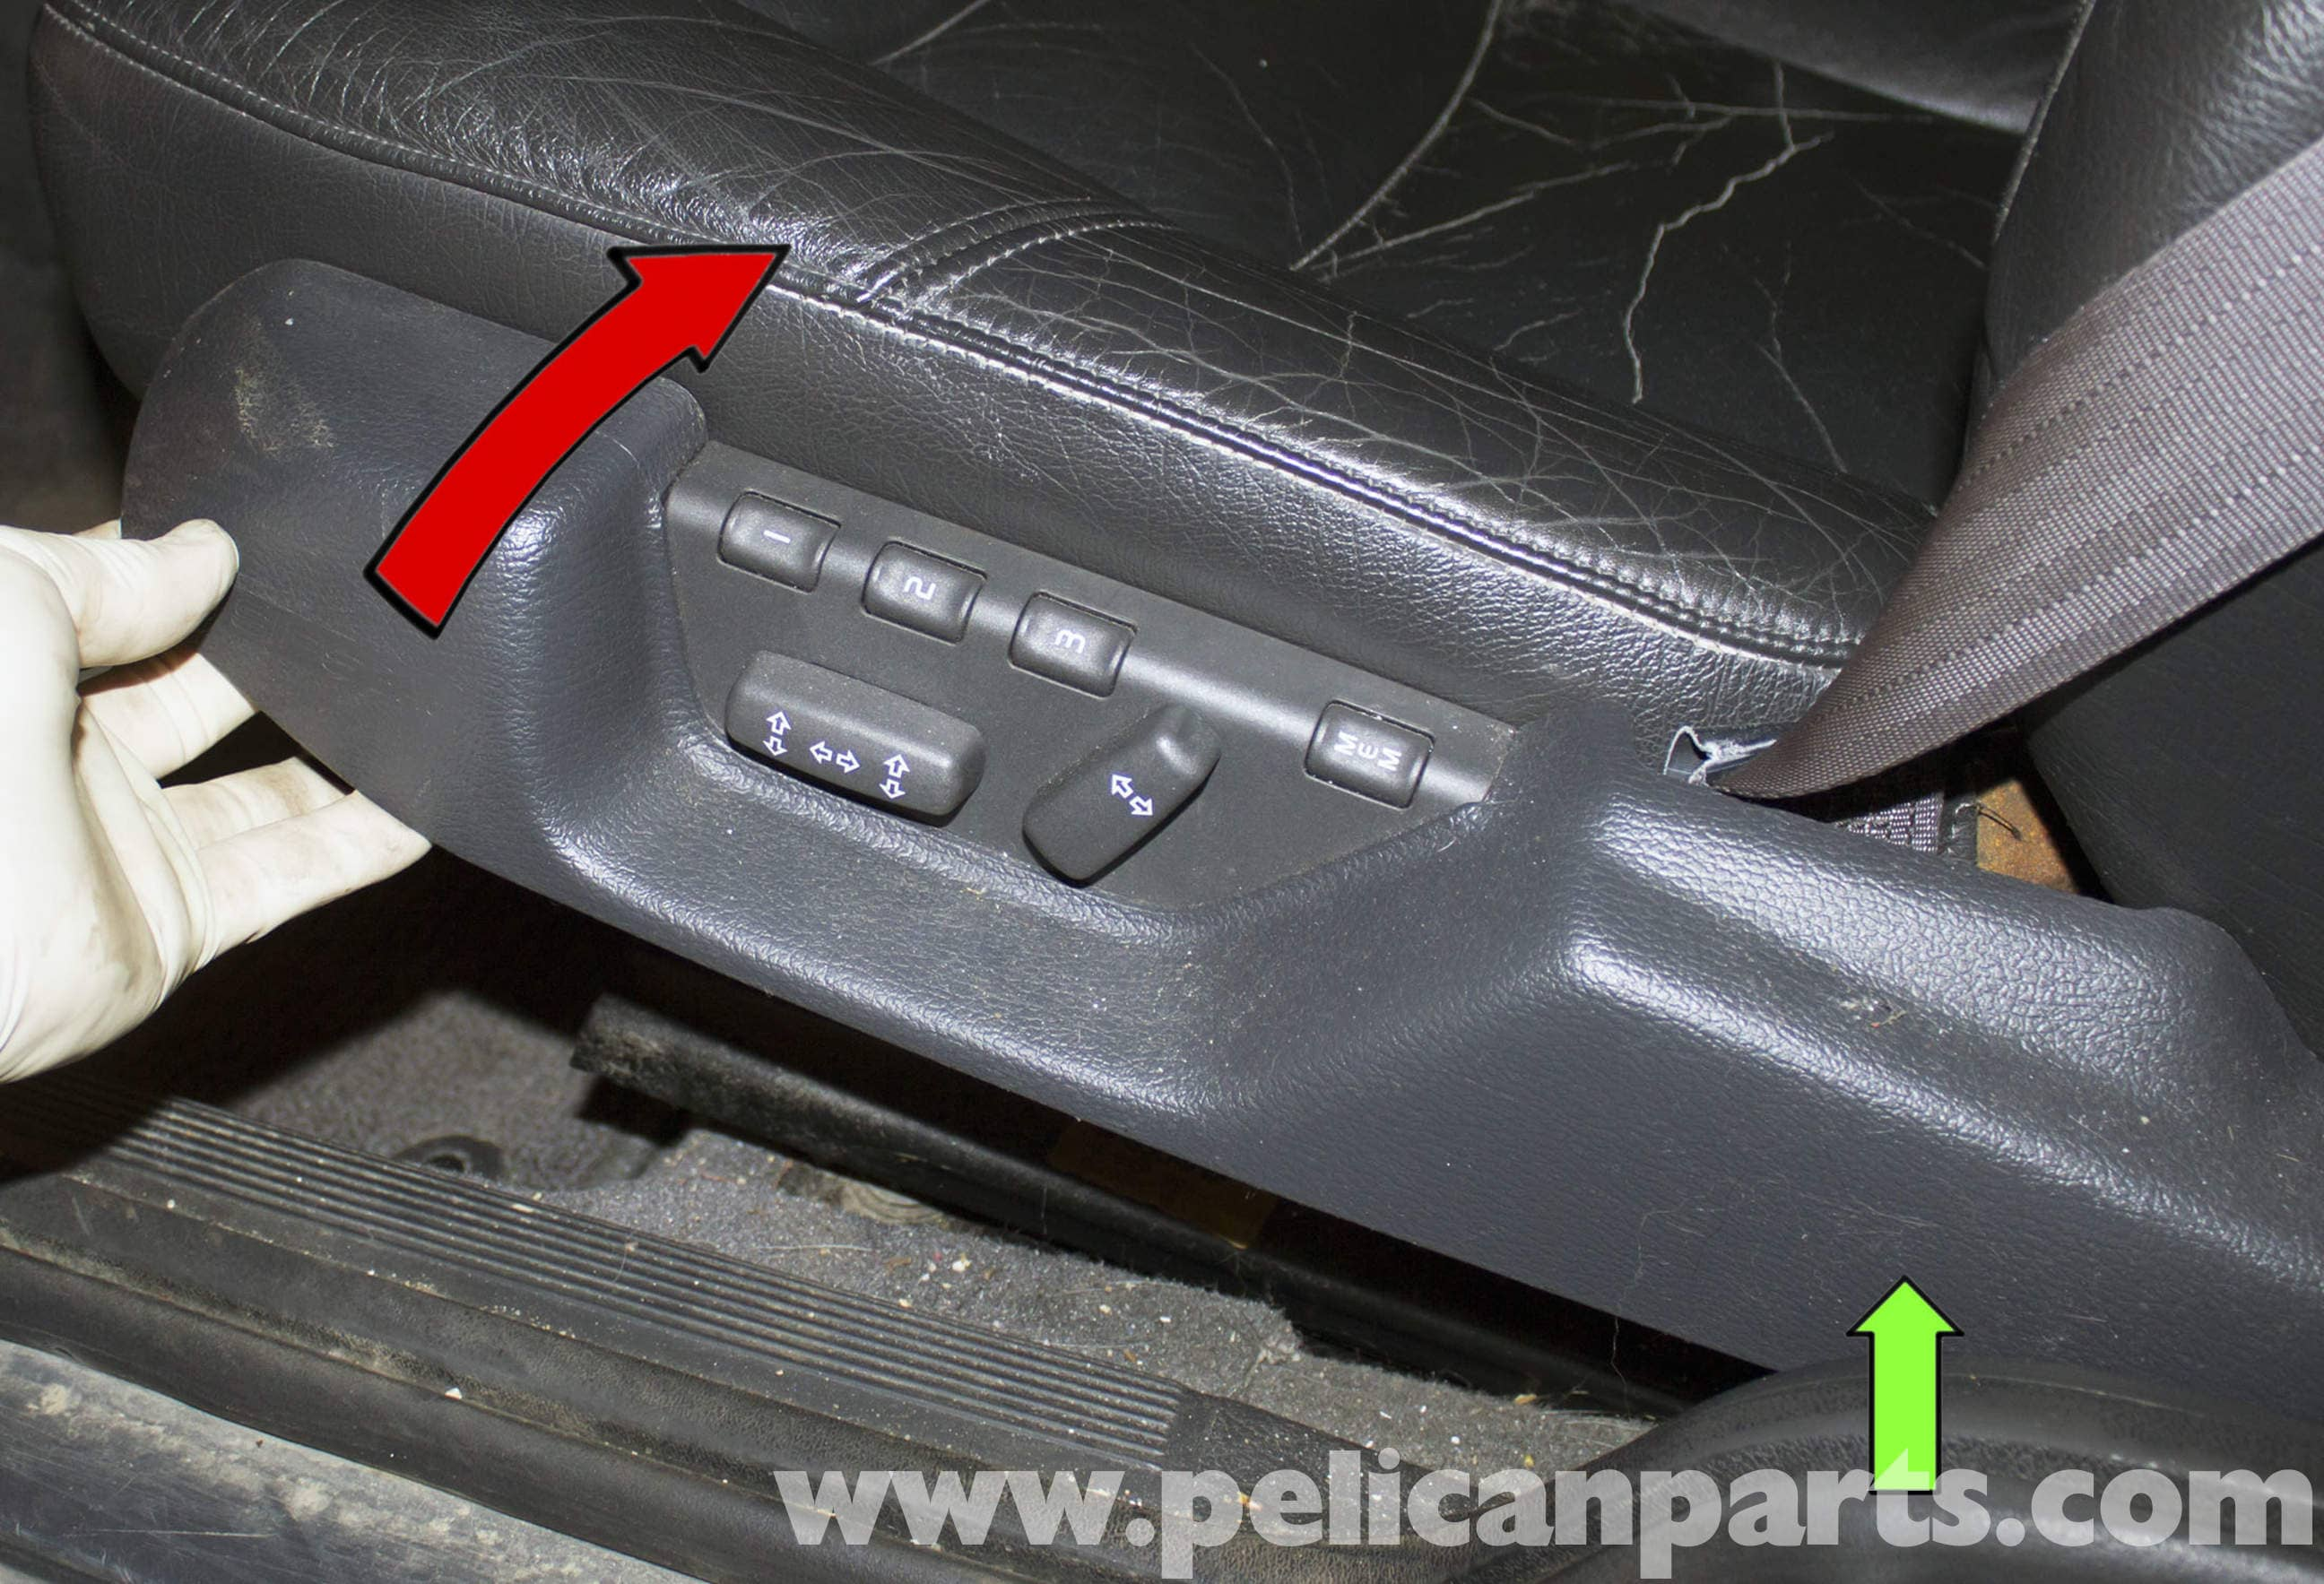 Volvo V70 Seat Switch Replacement (1998-2007) - Pelican Parts DIY ...